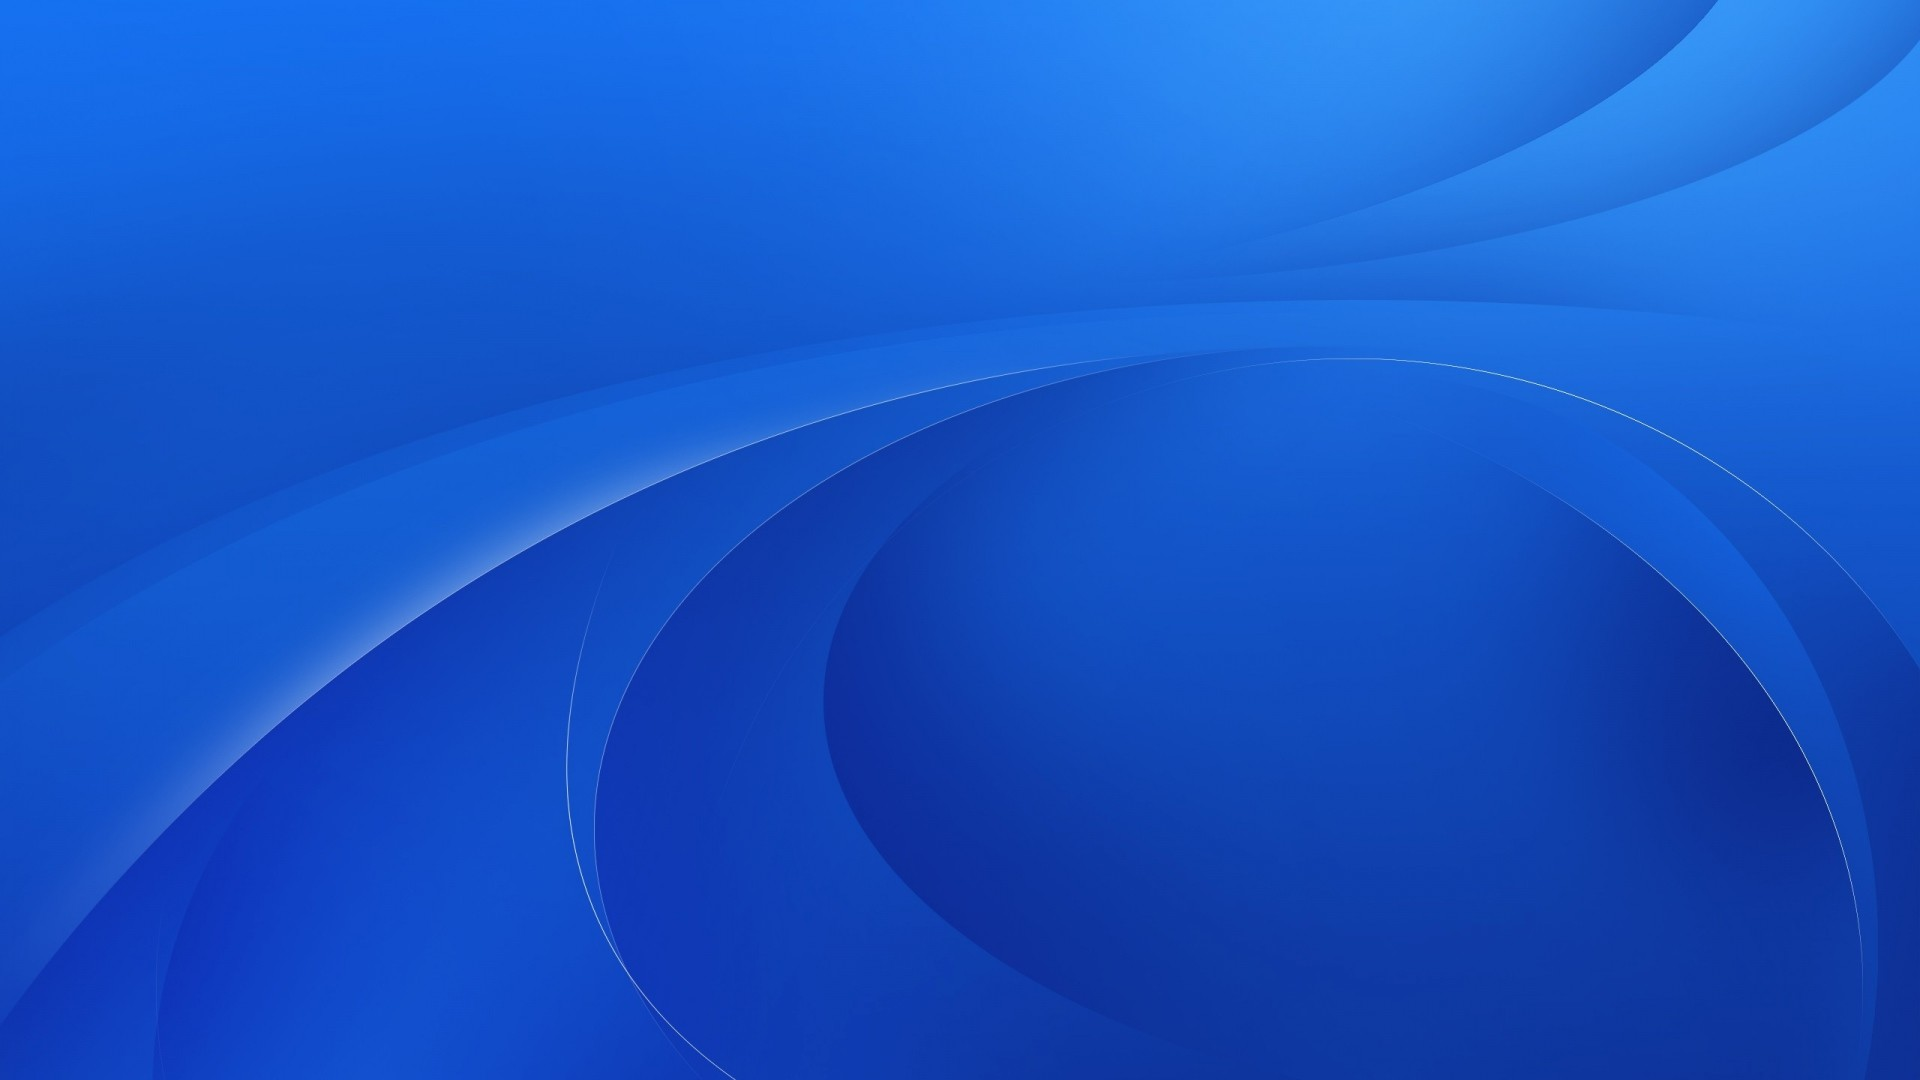 Get the latest blue, line, oval news, pictures and videos and learn all  about blue, line, oval from wallpapers4u.org, your wallpaper news source.